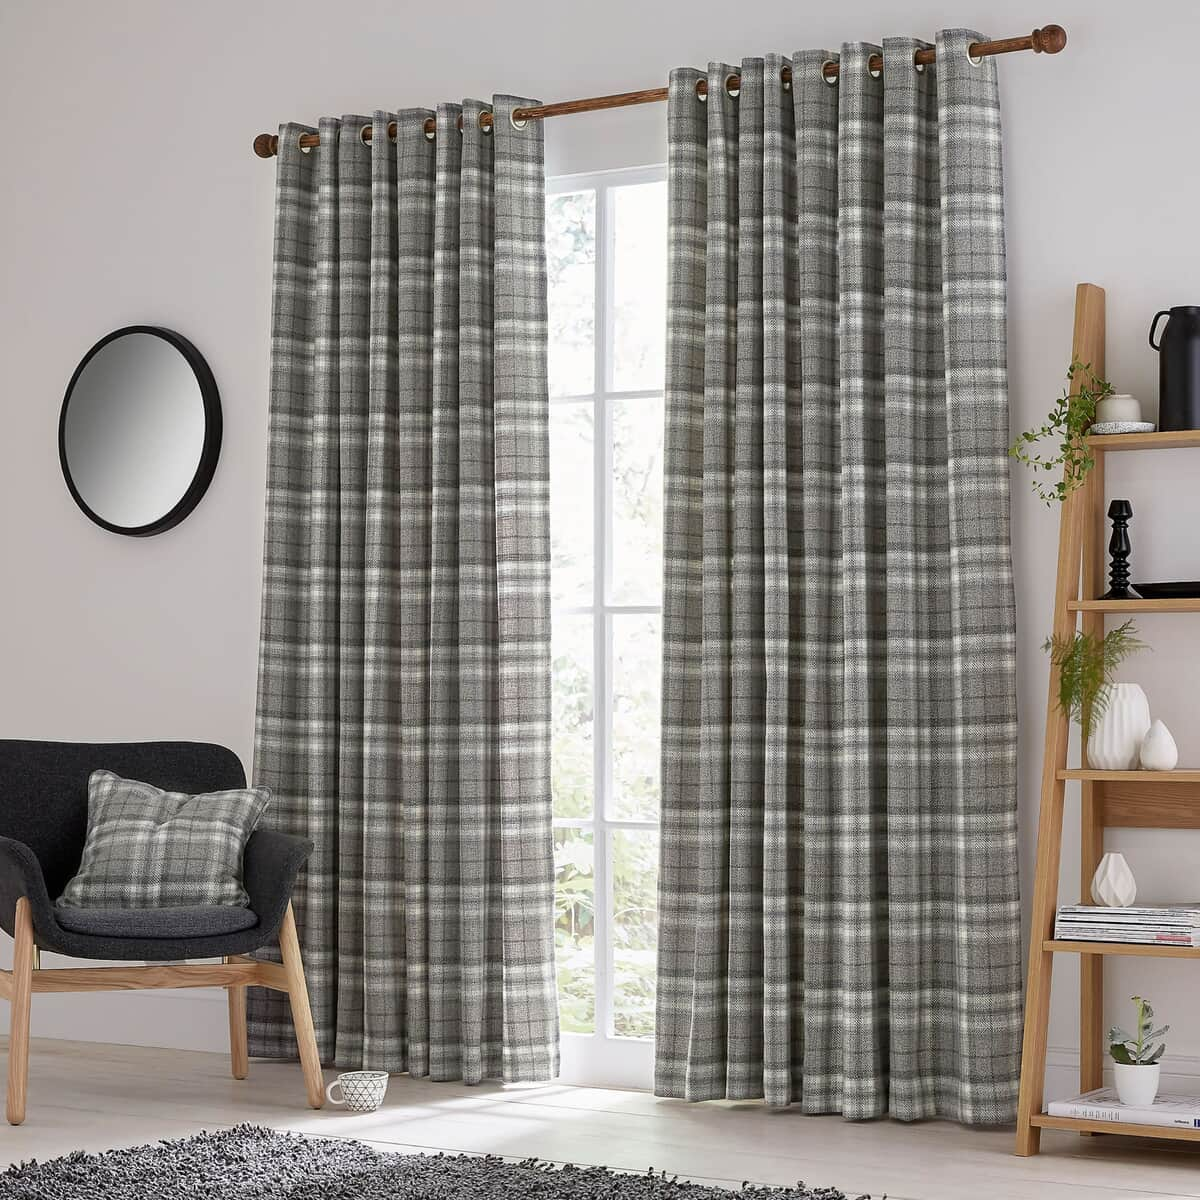 Helena Springfield Harriet Charcoal Curtains large